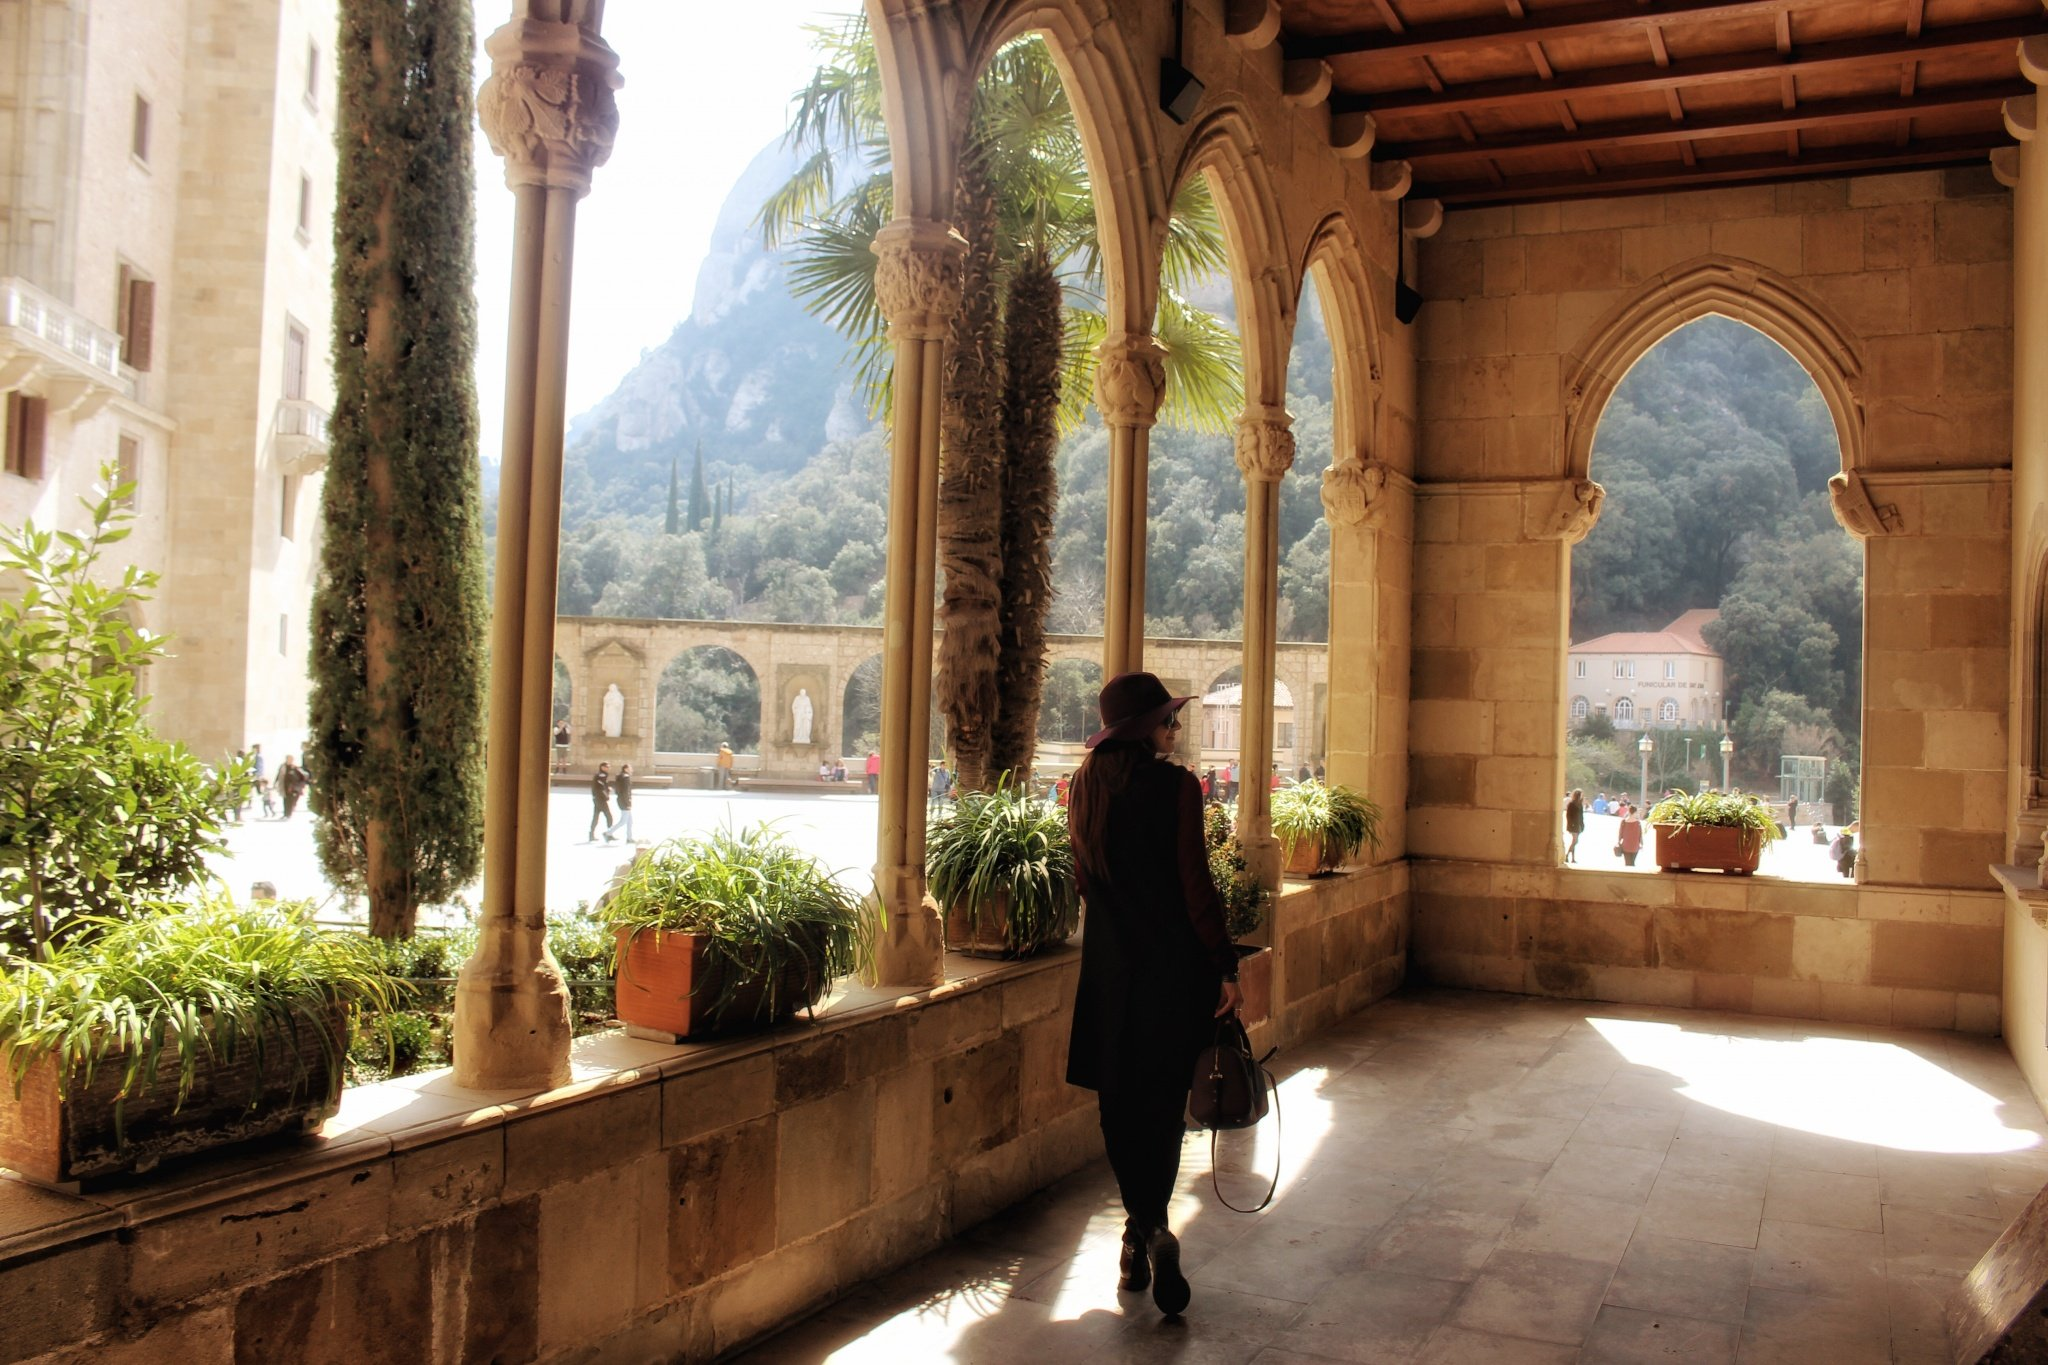 Montserrat: Will my wish come true?